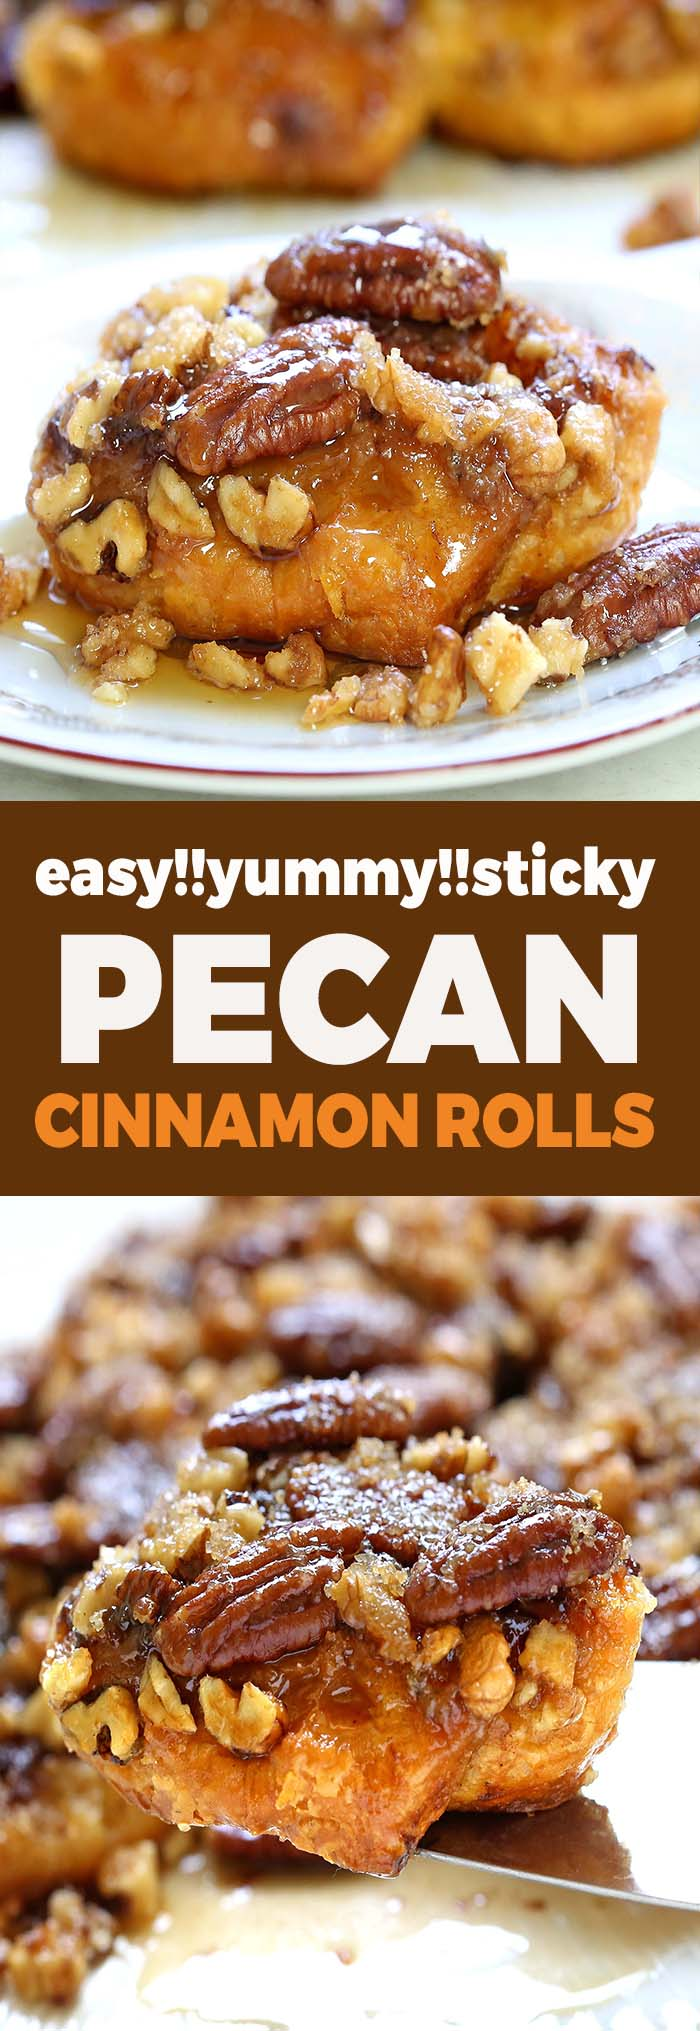 Caramel Pecan Cinnamon Rolls are made easier with refrigerated cinnamon rolls, and simple caramel sauce that goes into the bottom of your pan, along with pecans.